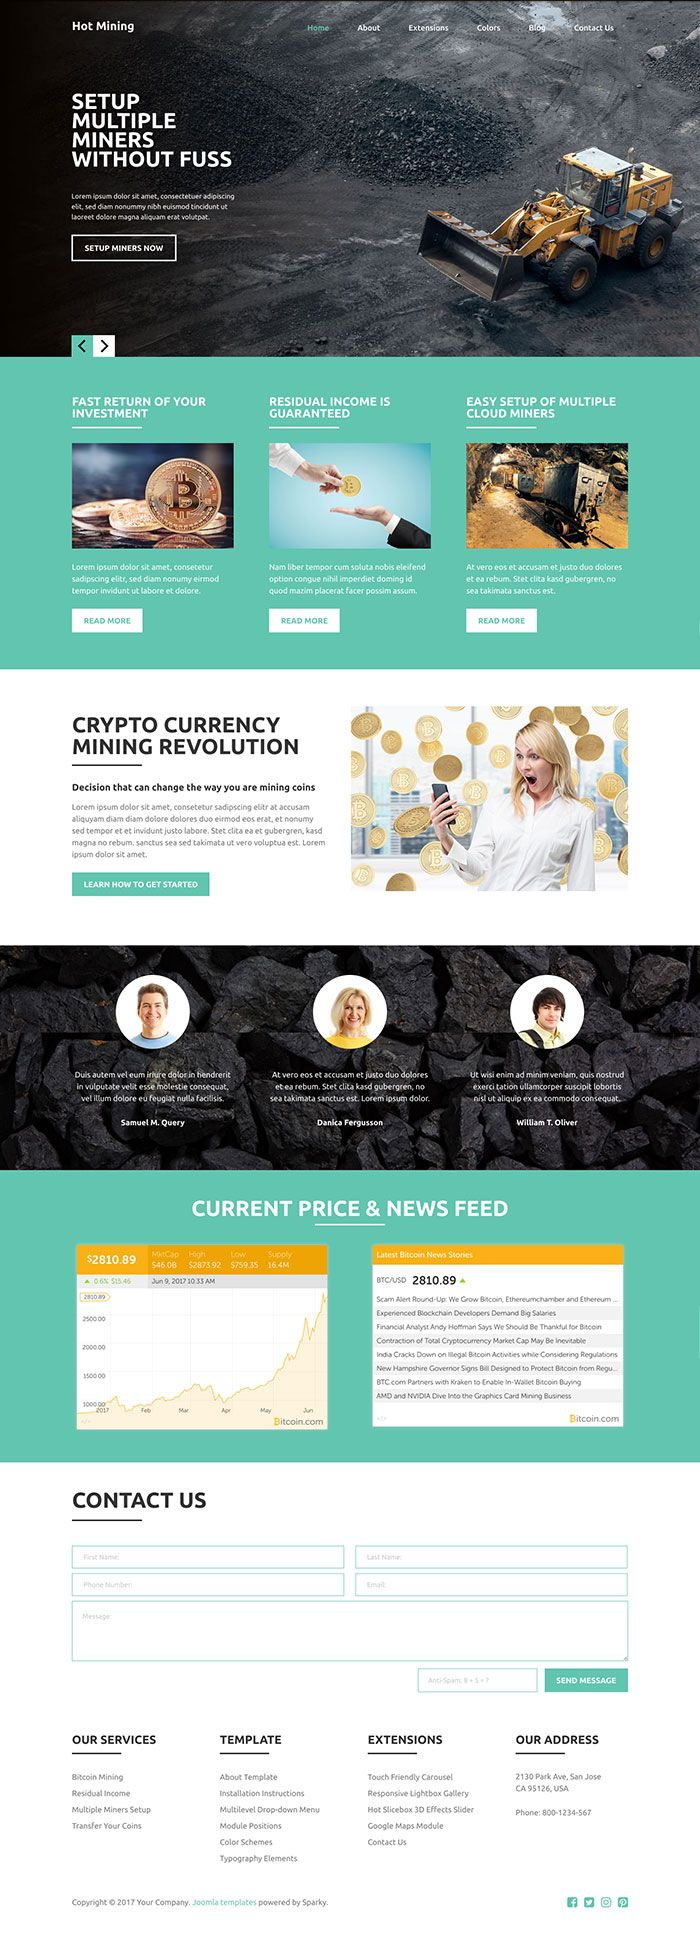 Hot Mining - Joomla Template Screenshot 5